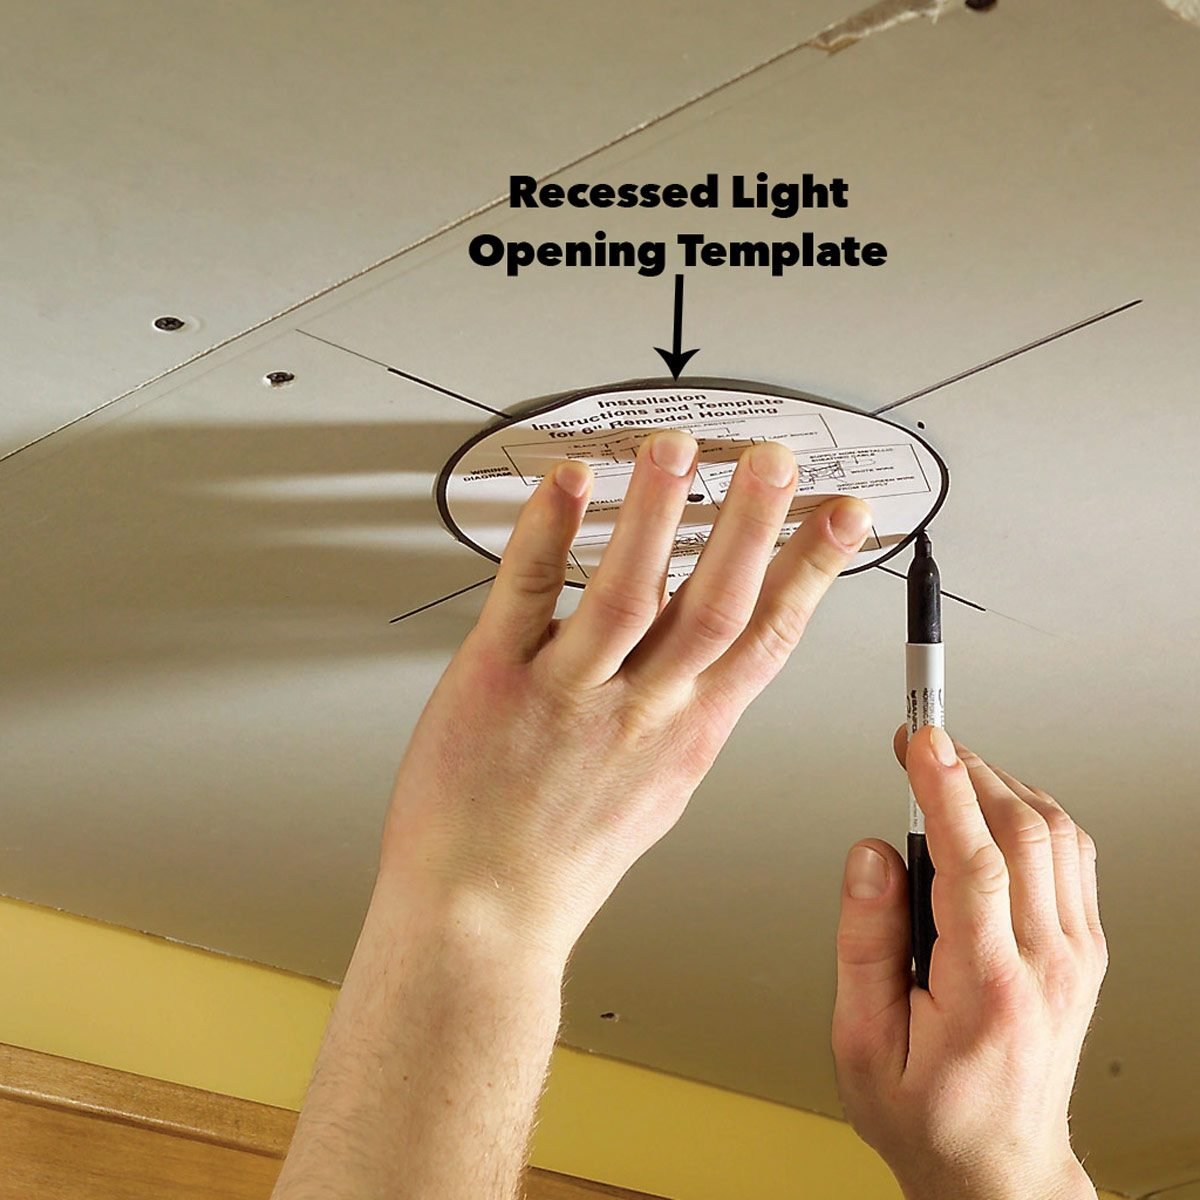 Cut out soffit light openings